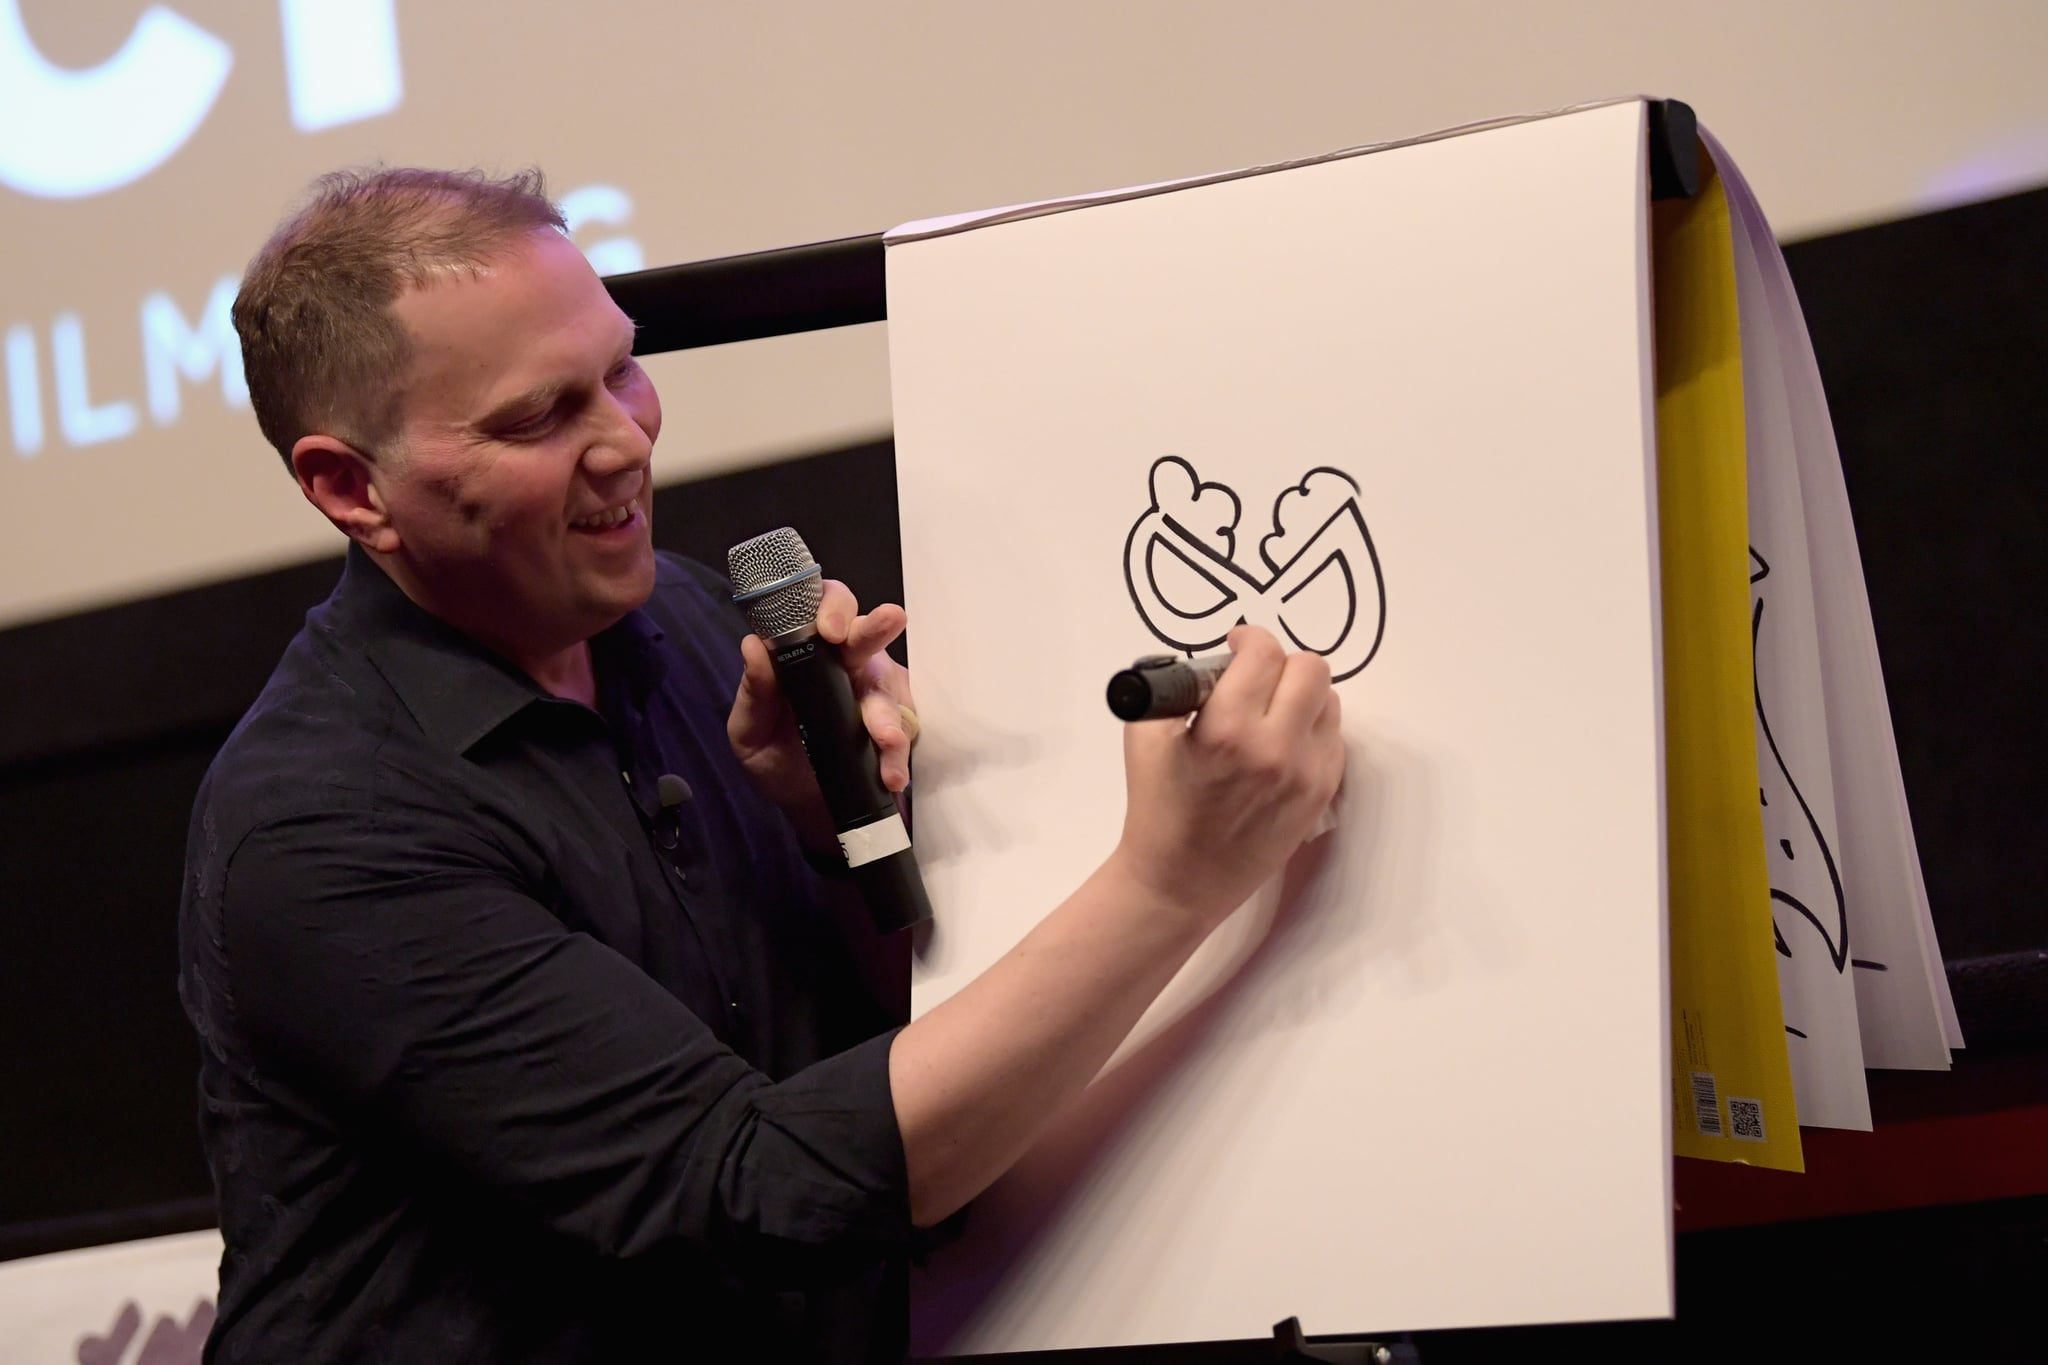 GREENWICH, CT - JUNE 01:  Author Dav Pilkey speaks to moviegoers after the screening of Captain Underpants during Greenwich International Film Festival, Day 1 on June 1, 2017 in Greenwich, Connecticut.  (Photo by Ben Gabbe/Getty Images for Greenwich International Film Festival)